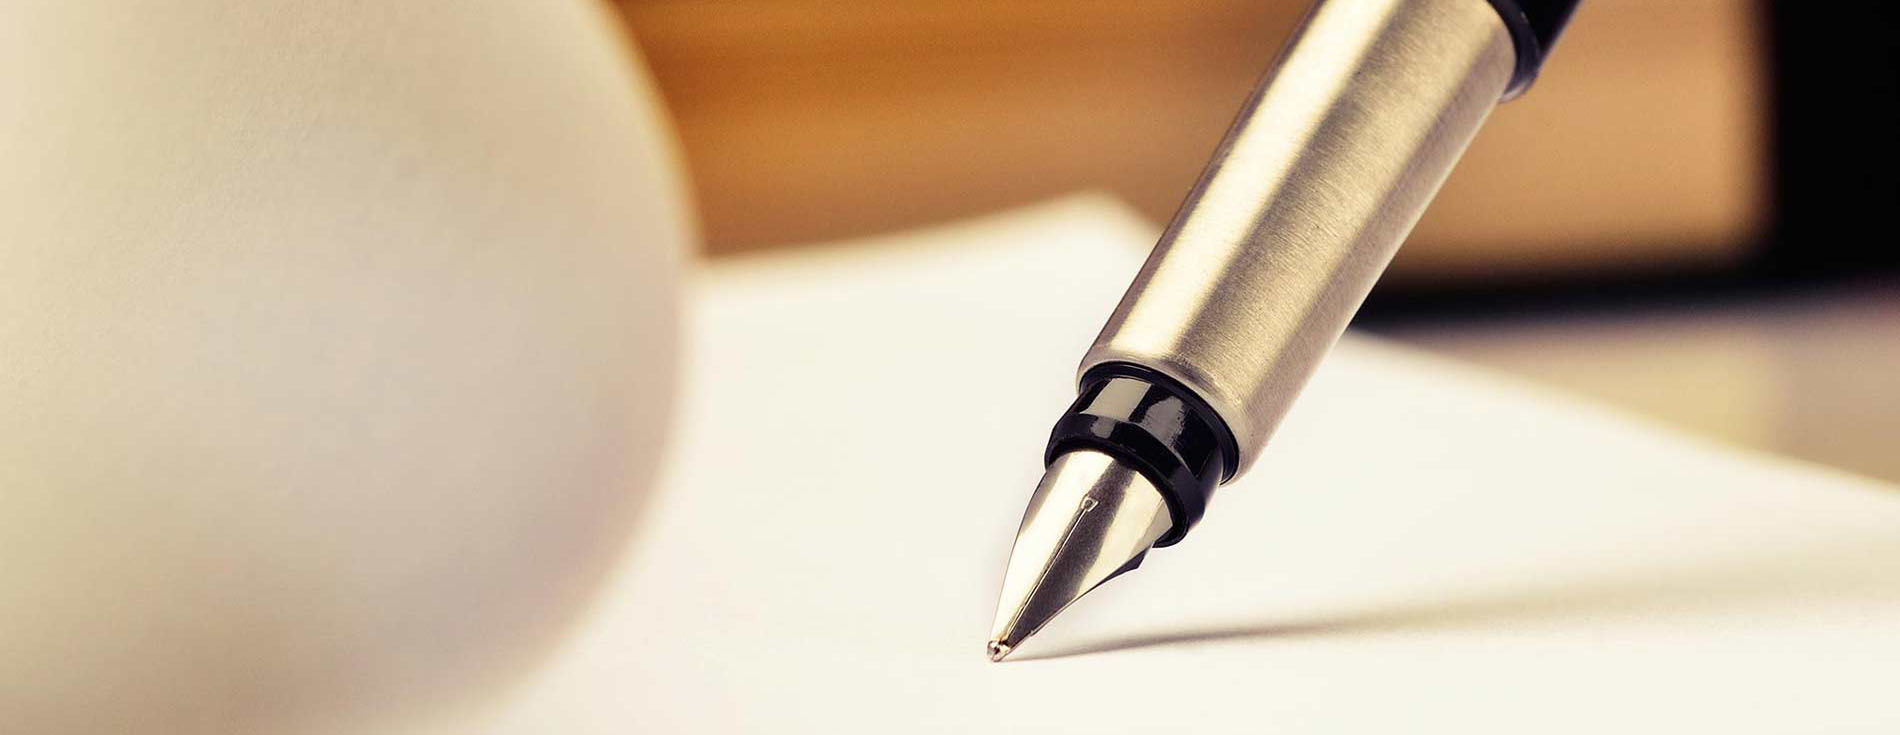 Is Your Document Complete and Ready for Notarization?